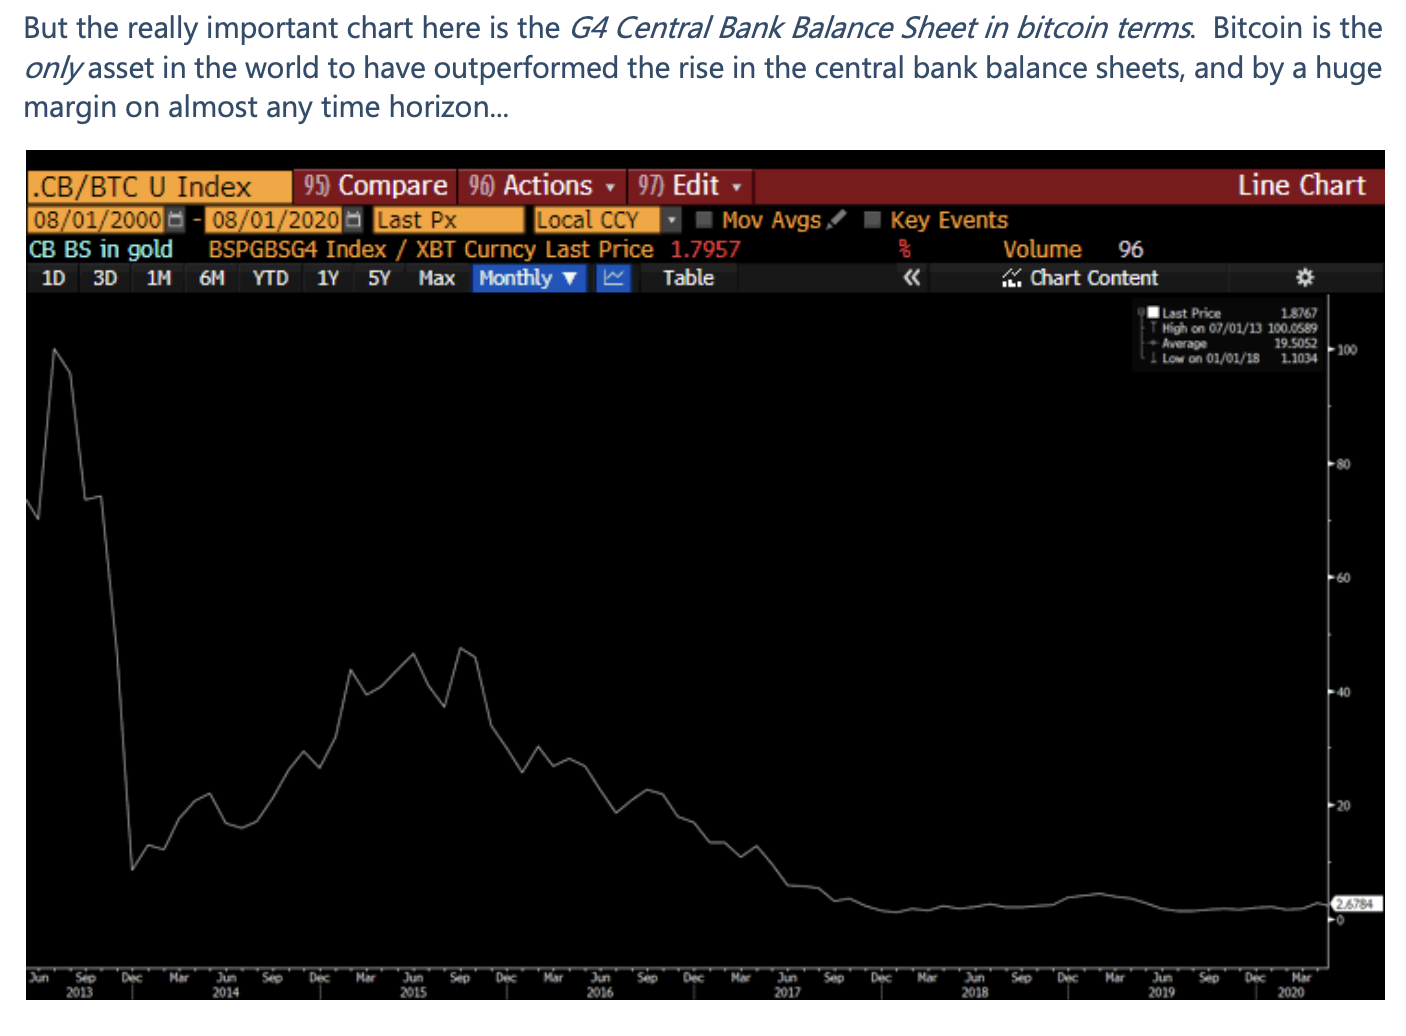 G4 central bank balance sheet in Bitcoin terms